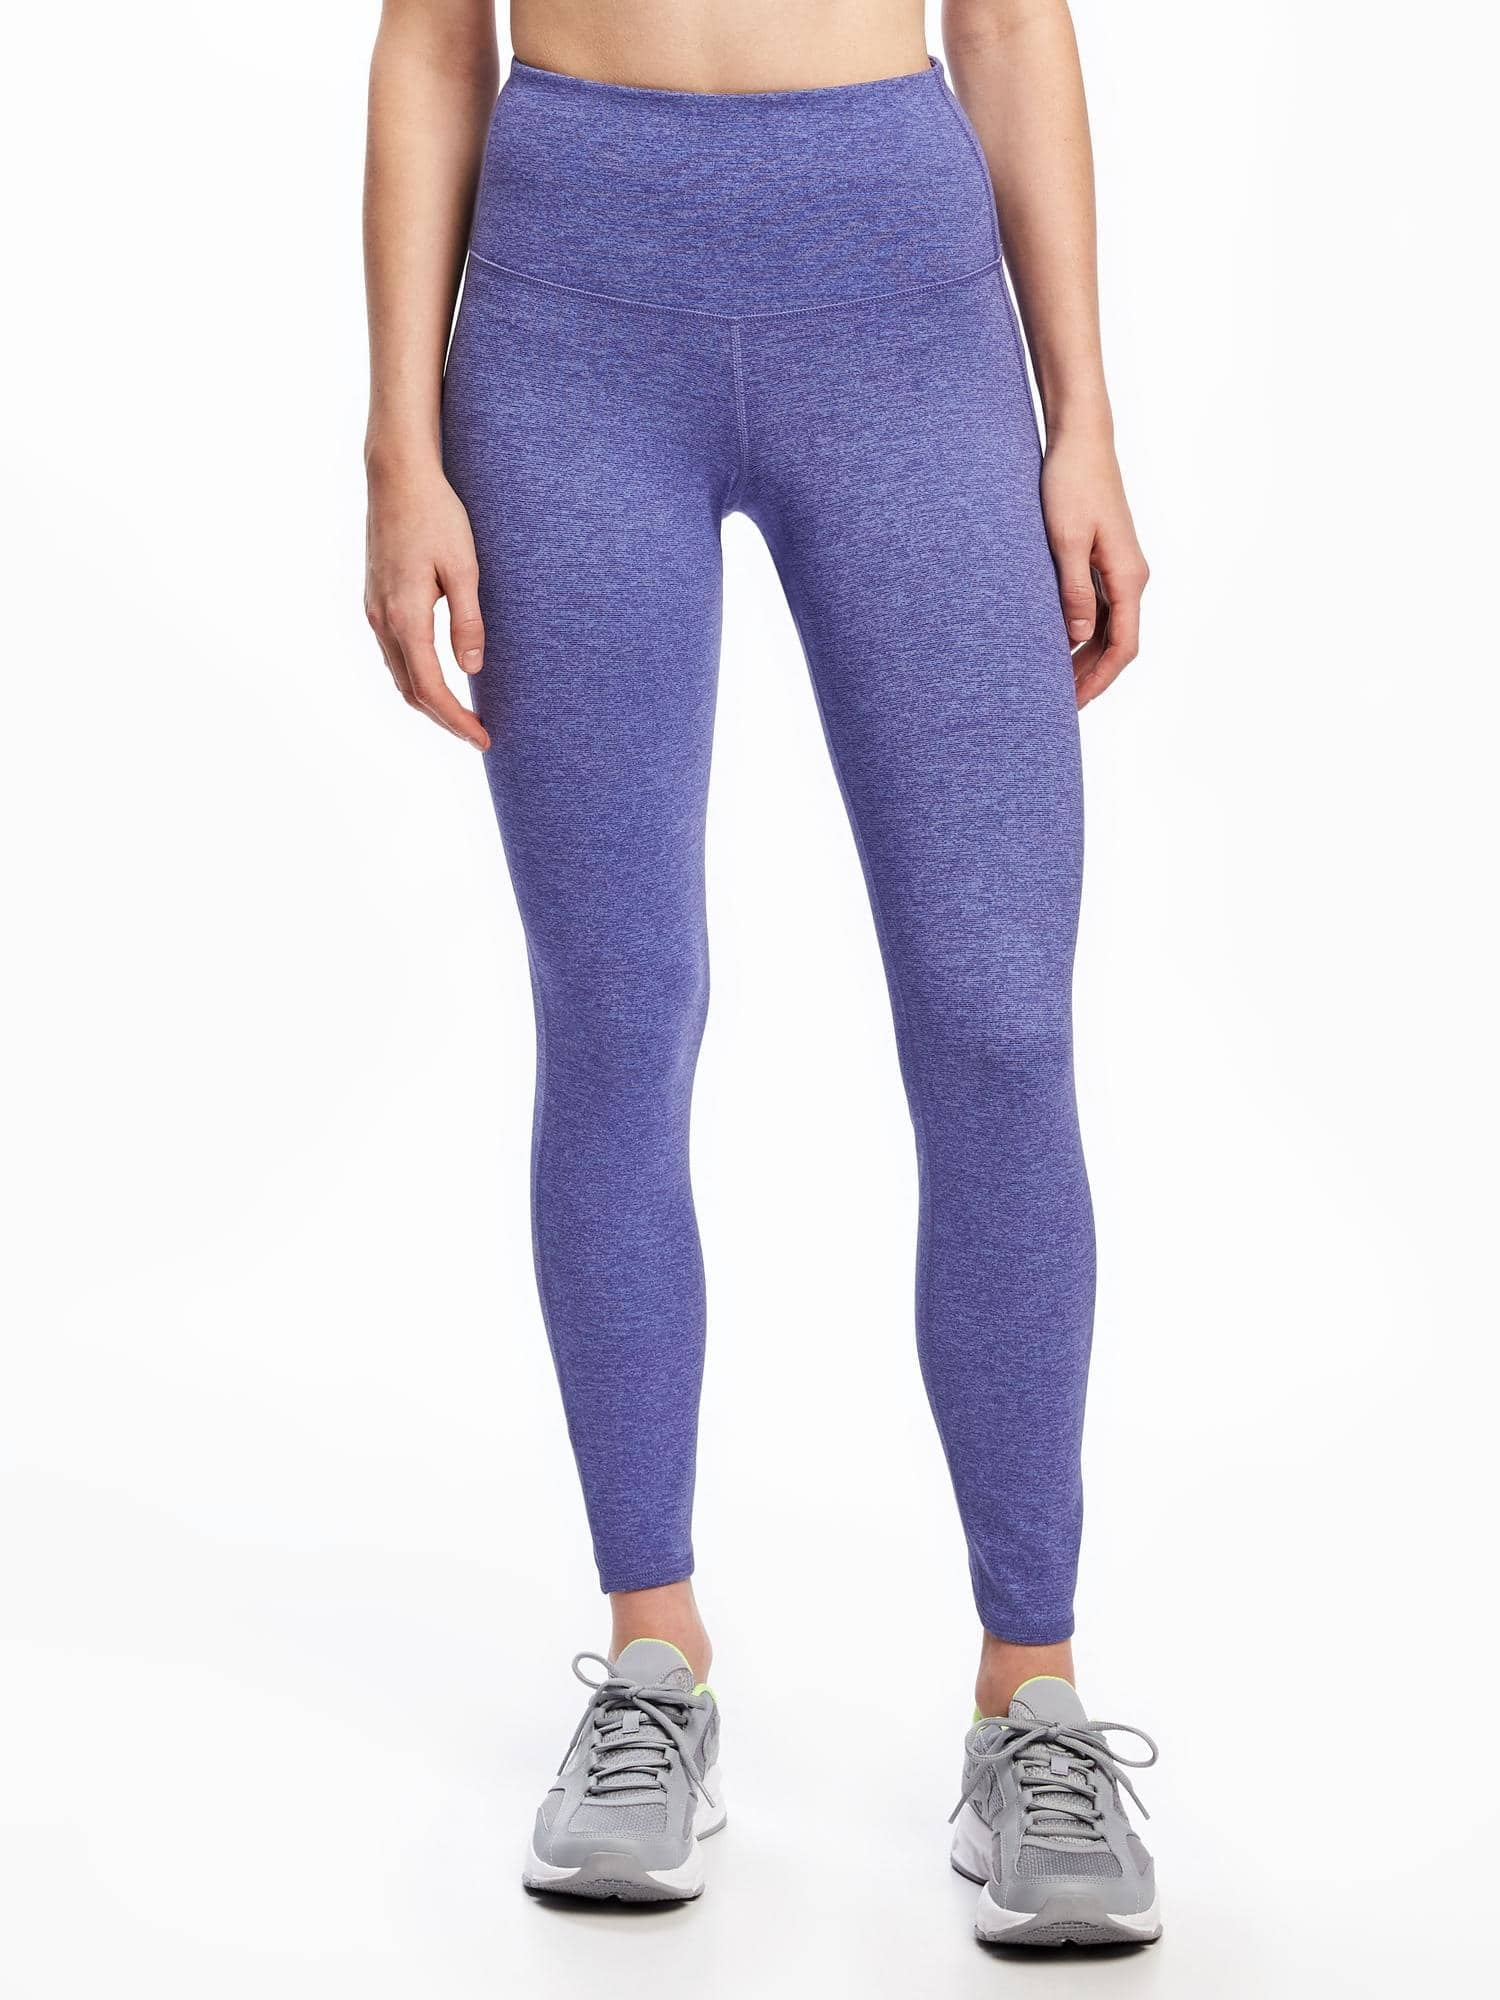 f173eb7435 These look-alikes have an uncannily similar appearance to the Lululemon High  Times space dye pants ($98) and the Wunder Under Hi-Rise ($98) — but they're  ...